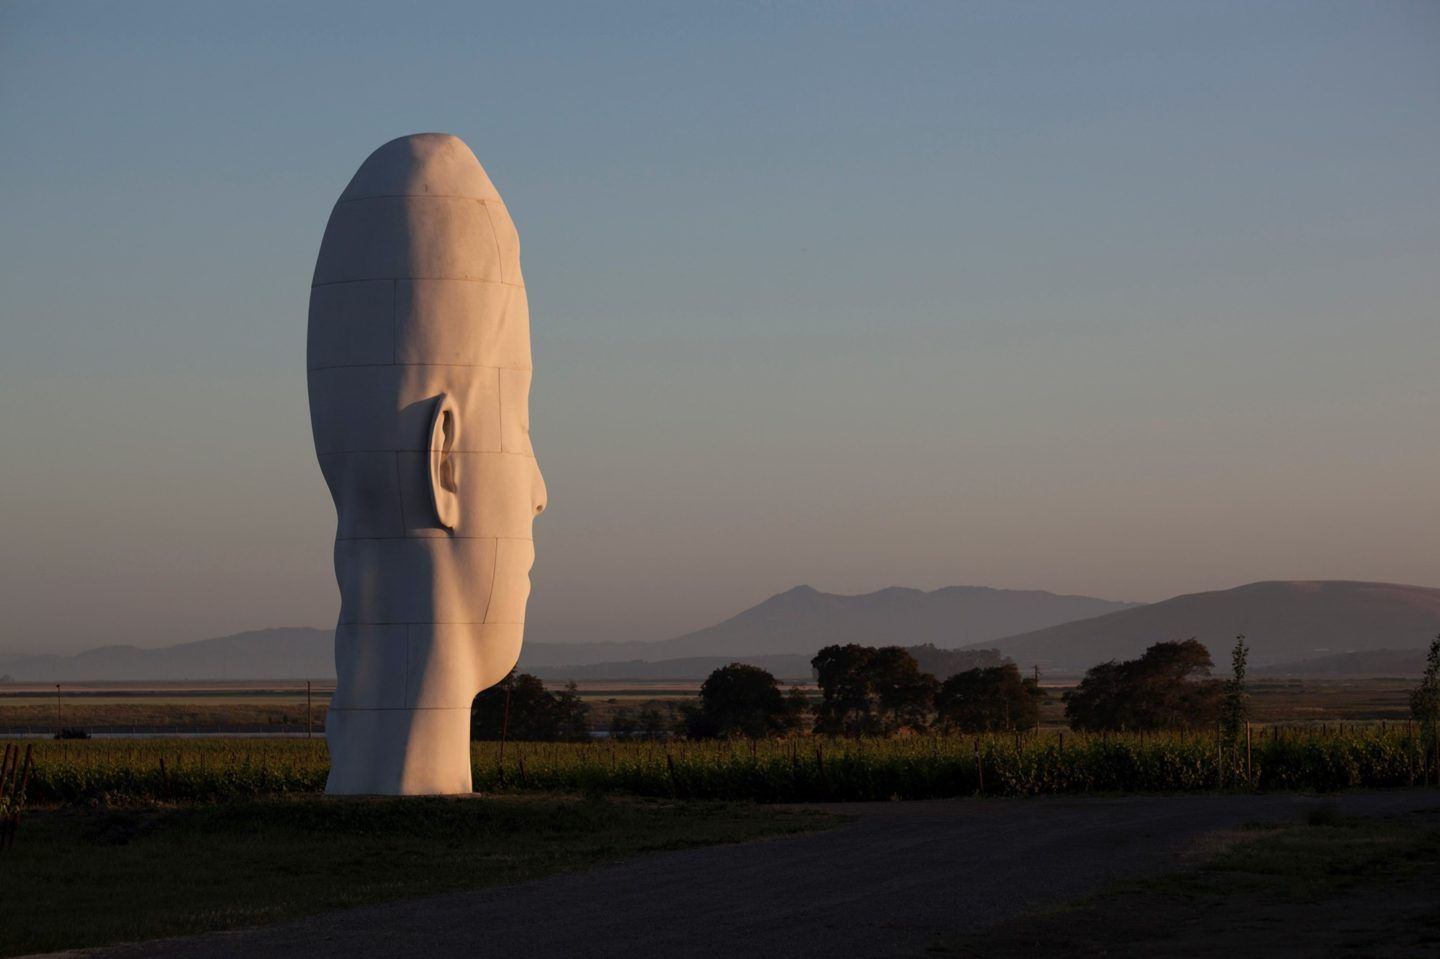 IGNANT-Art-Donum-Estate-Sculpture-Collection-Jaume-Plensa-009